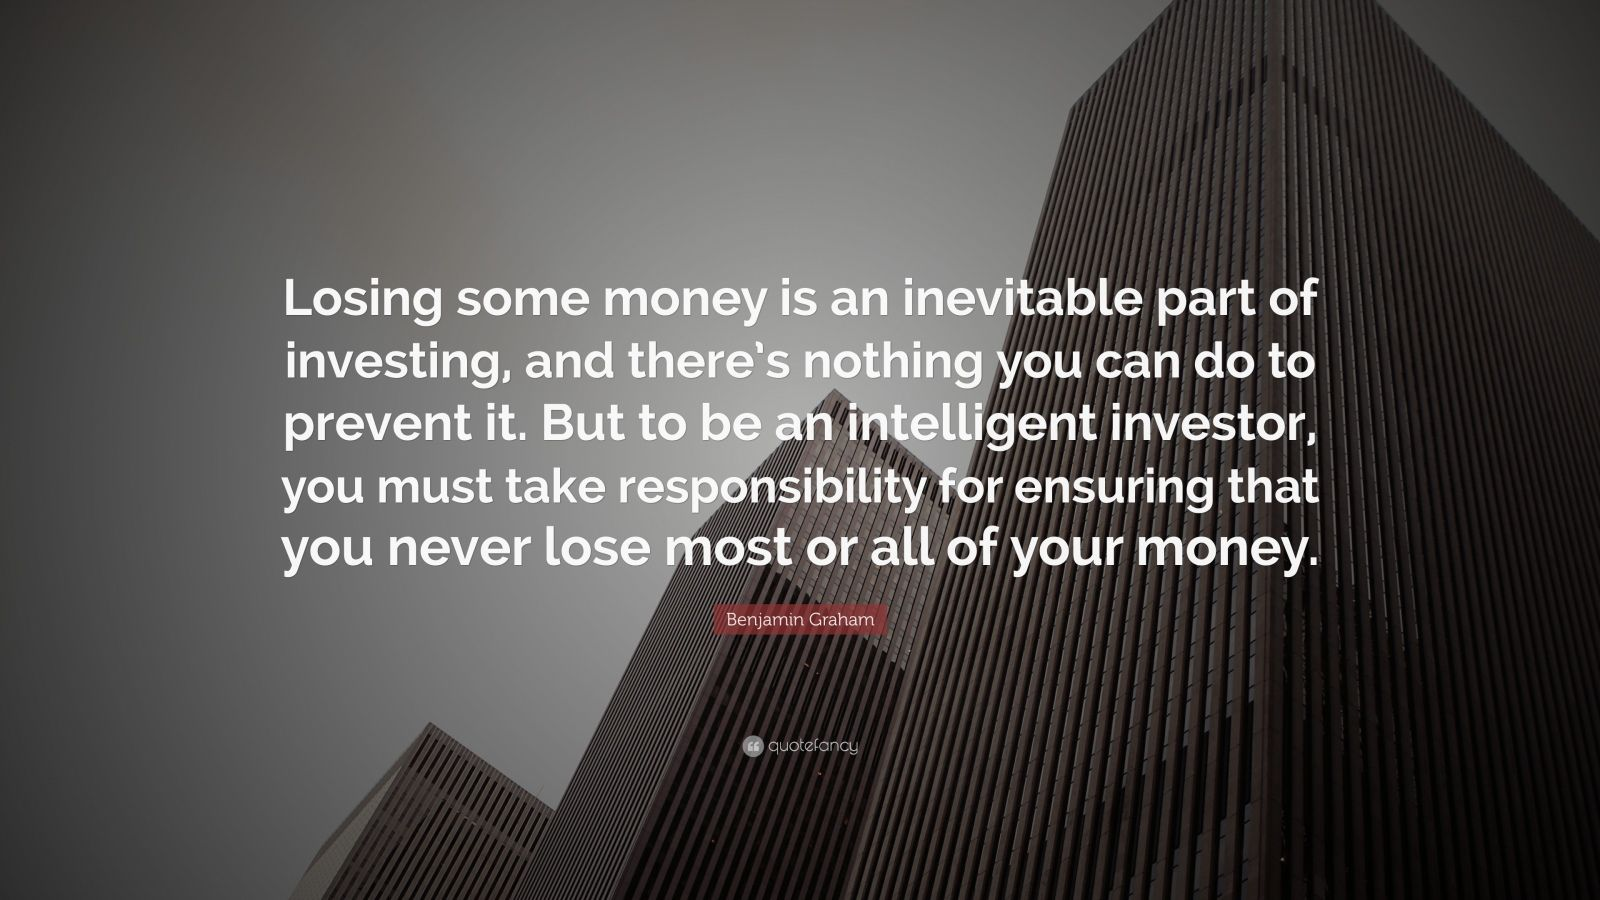 """Benjamin Graham Quote: """"Losing some money is an inevitable part of investing, and there's nothing you can do to prevent it. But to be an intelligent investor, you must take responsibility for ensuring that you never lose most or all of your money."""""""